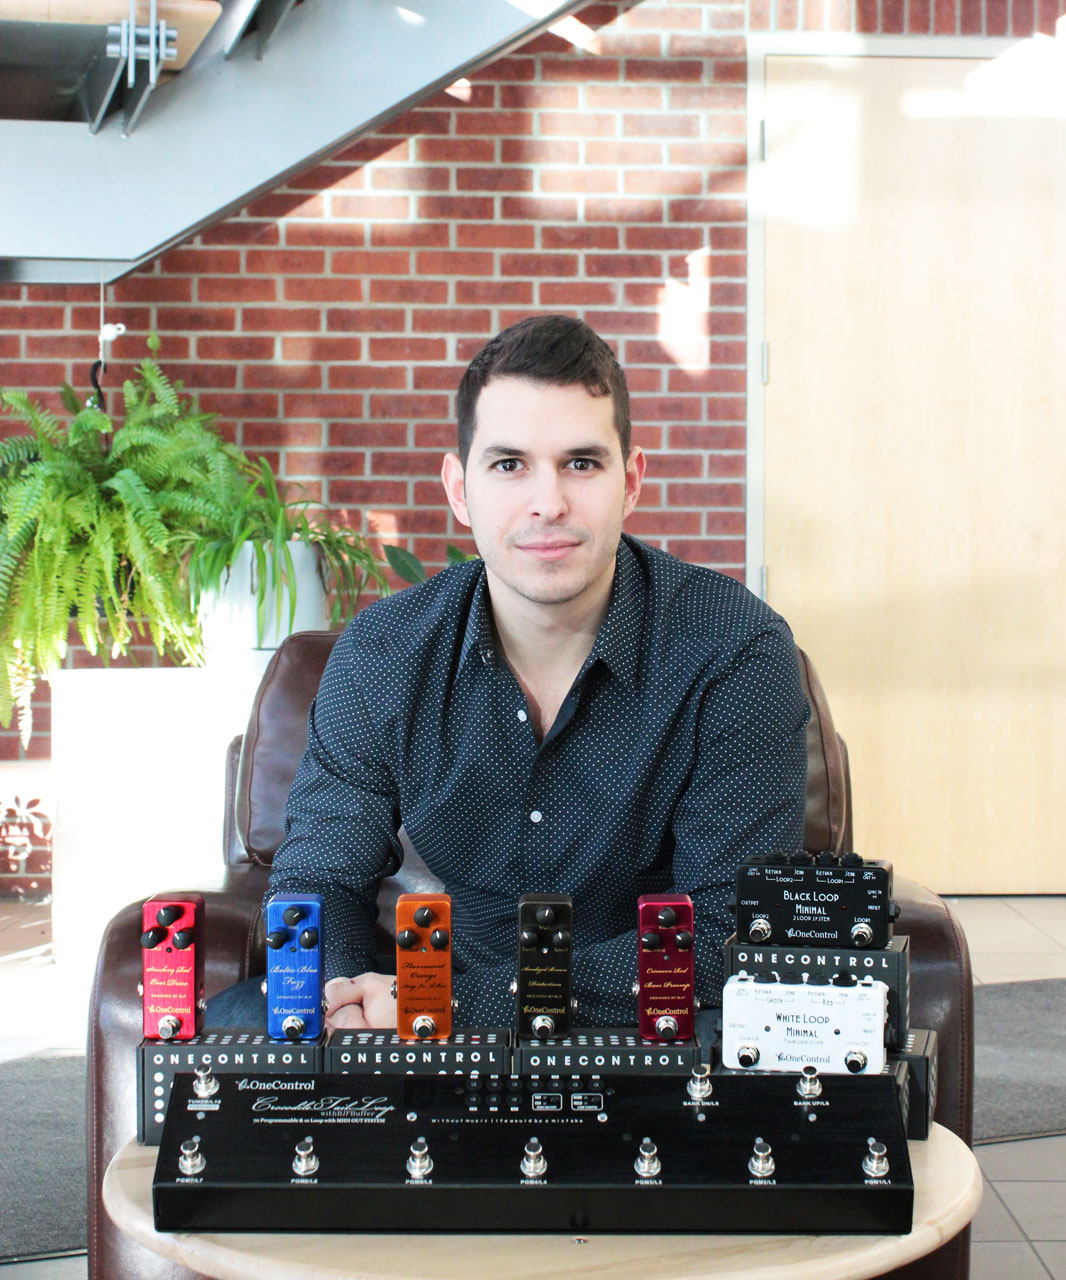 One Control Products will be managed by Franco Caruso, Assistant Brand Manager for the Musical Instruments Business Unit at SFM.